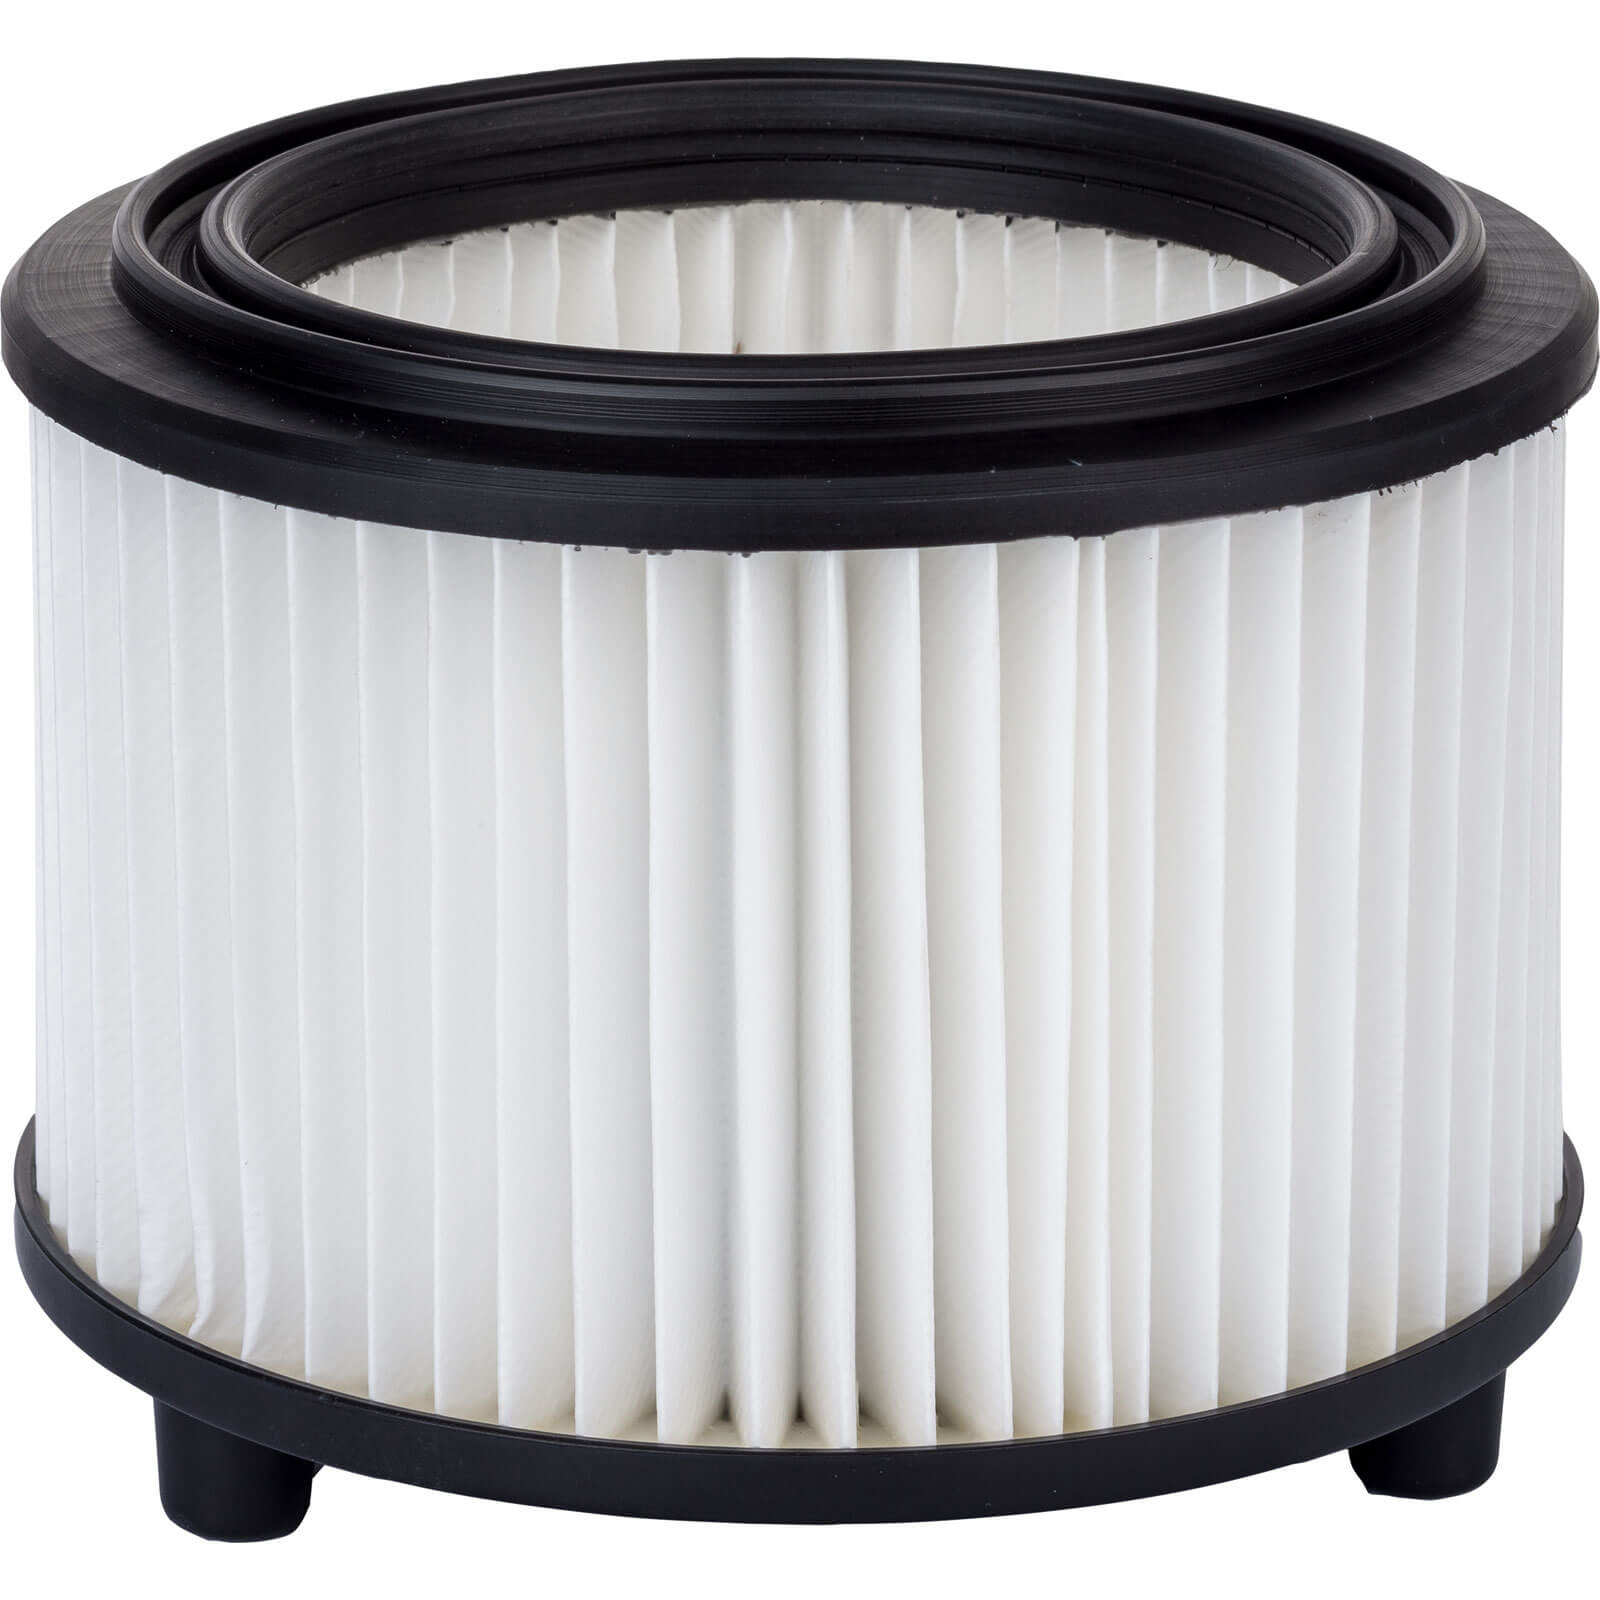 Bosch Cartridge Filter for UNIVERSALVAC 15 Vacuum Cleaner